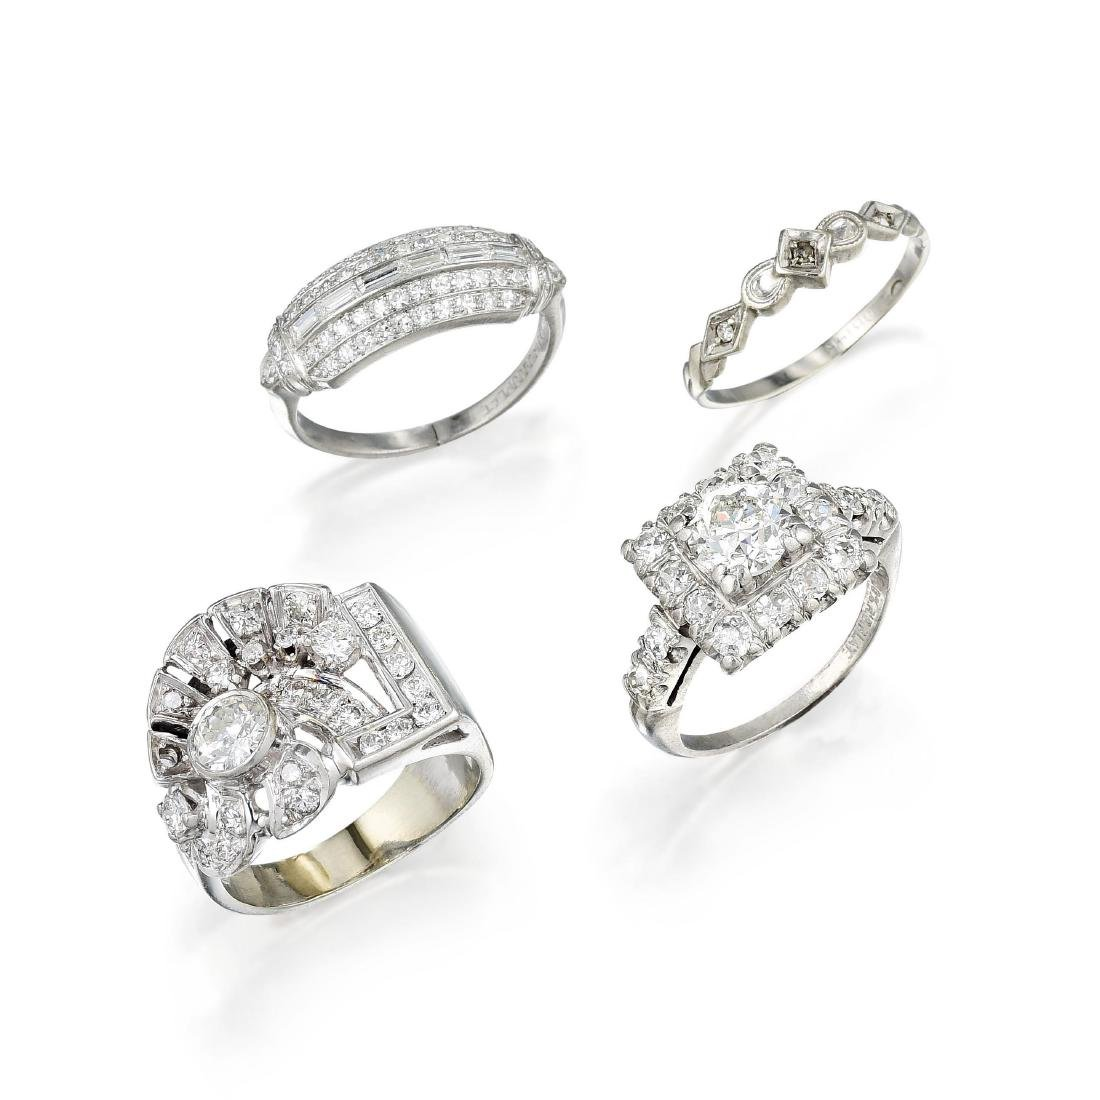 A Group of Art Deco Diamond Rings